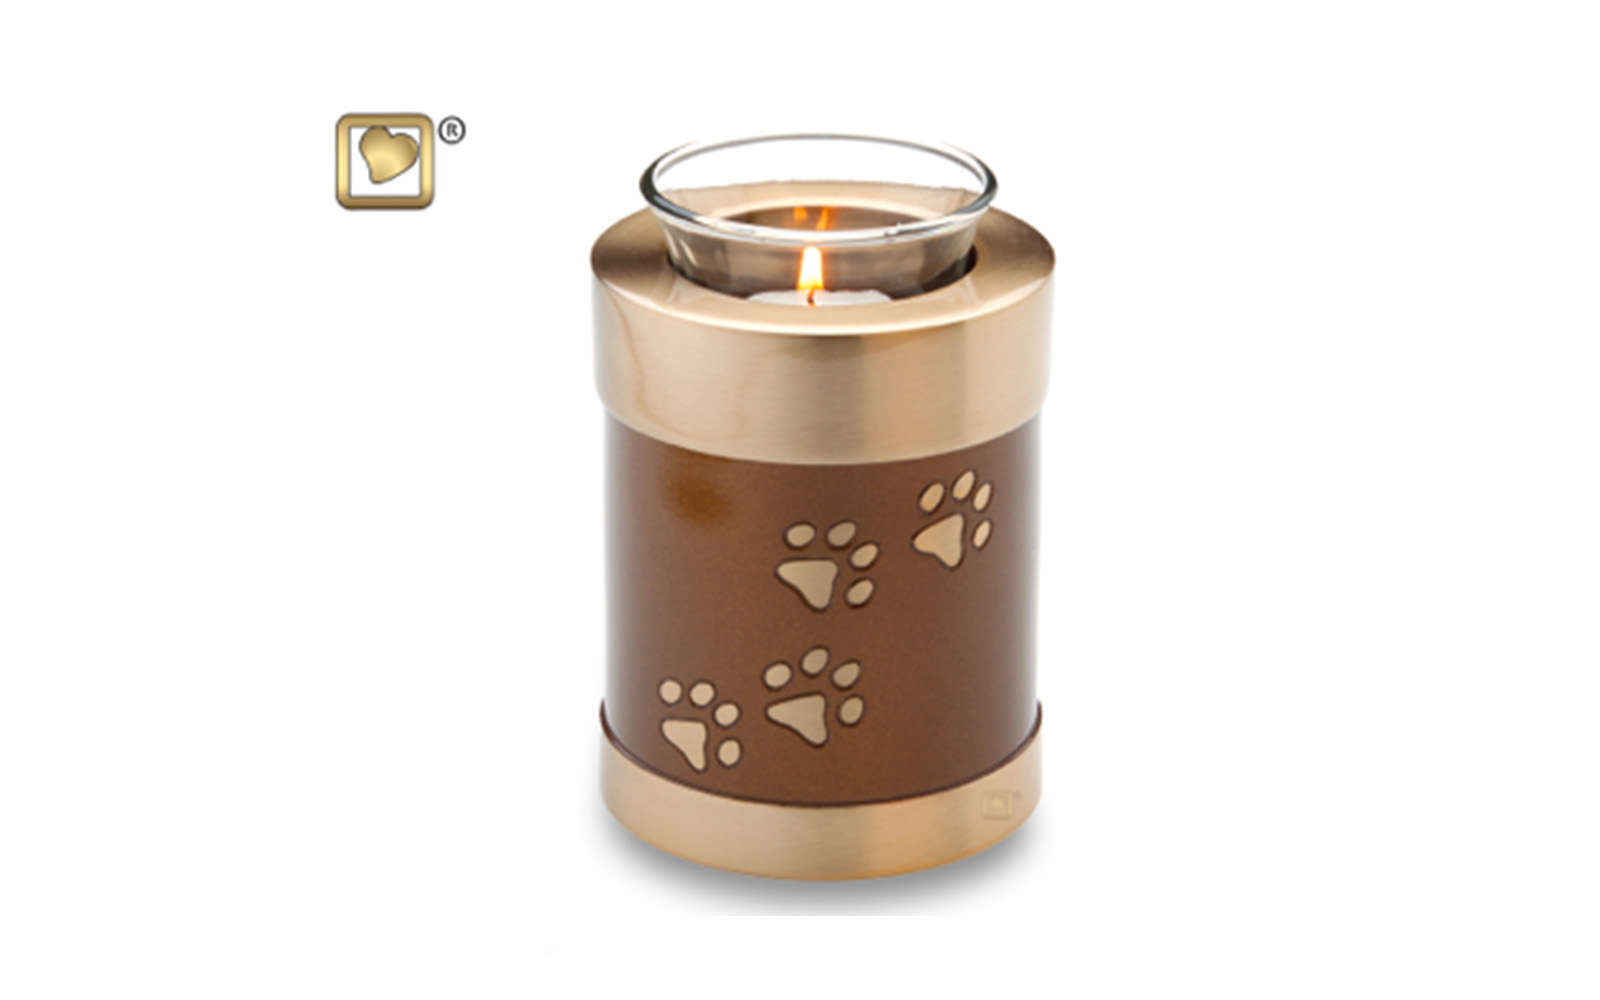 """Tealight Bronze Urn     Made of Solid Brass with a brushed Antique Solid Brass Finish, comes in both Bronze (shown) and Black Colors, measuring 5"""" high, 18 Cu. inches, up to 13 lbs. Glass insert included, Candle not included,  $98     This tealight urn also comes in a taller model in Black only, measuring 10.5"""" high, 58 Cu. inches, up to 53 lbs. Glass insert included, Candle not included,  $110"""